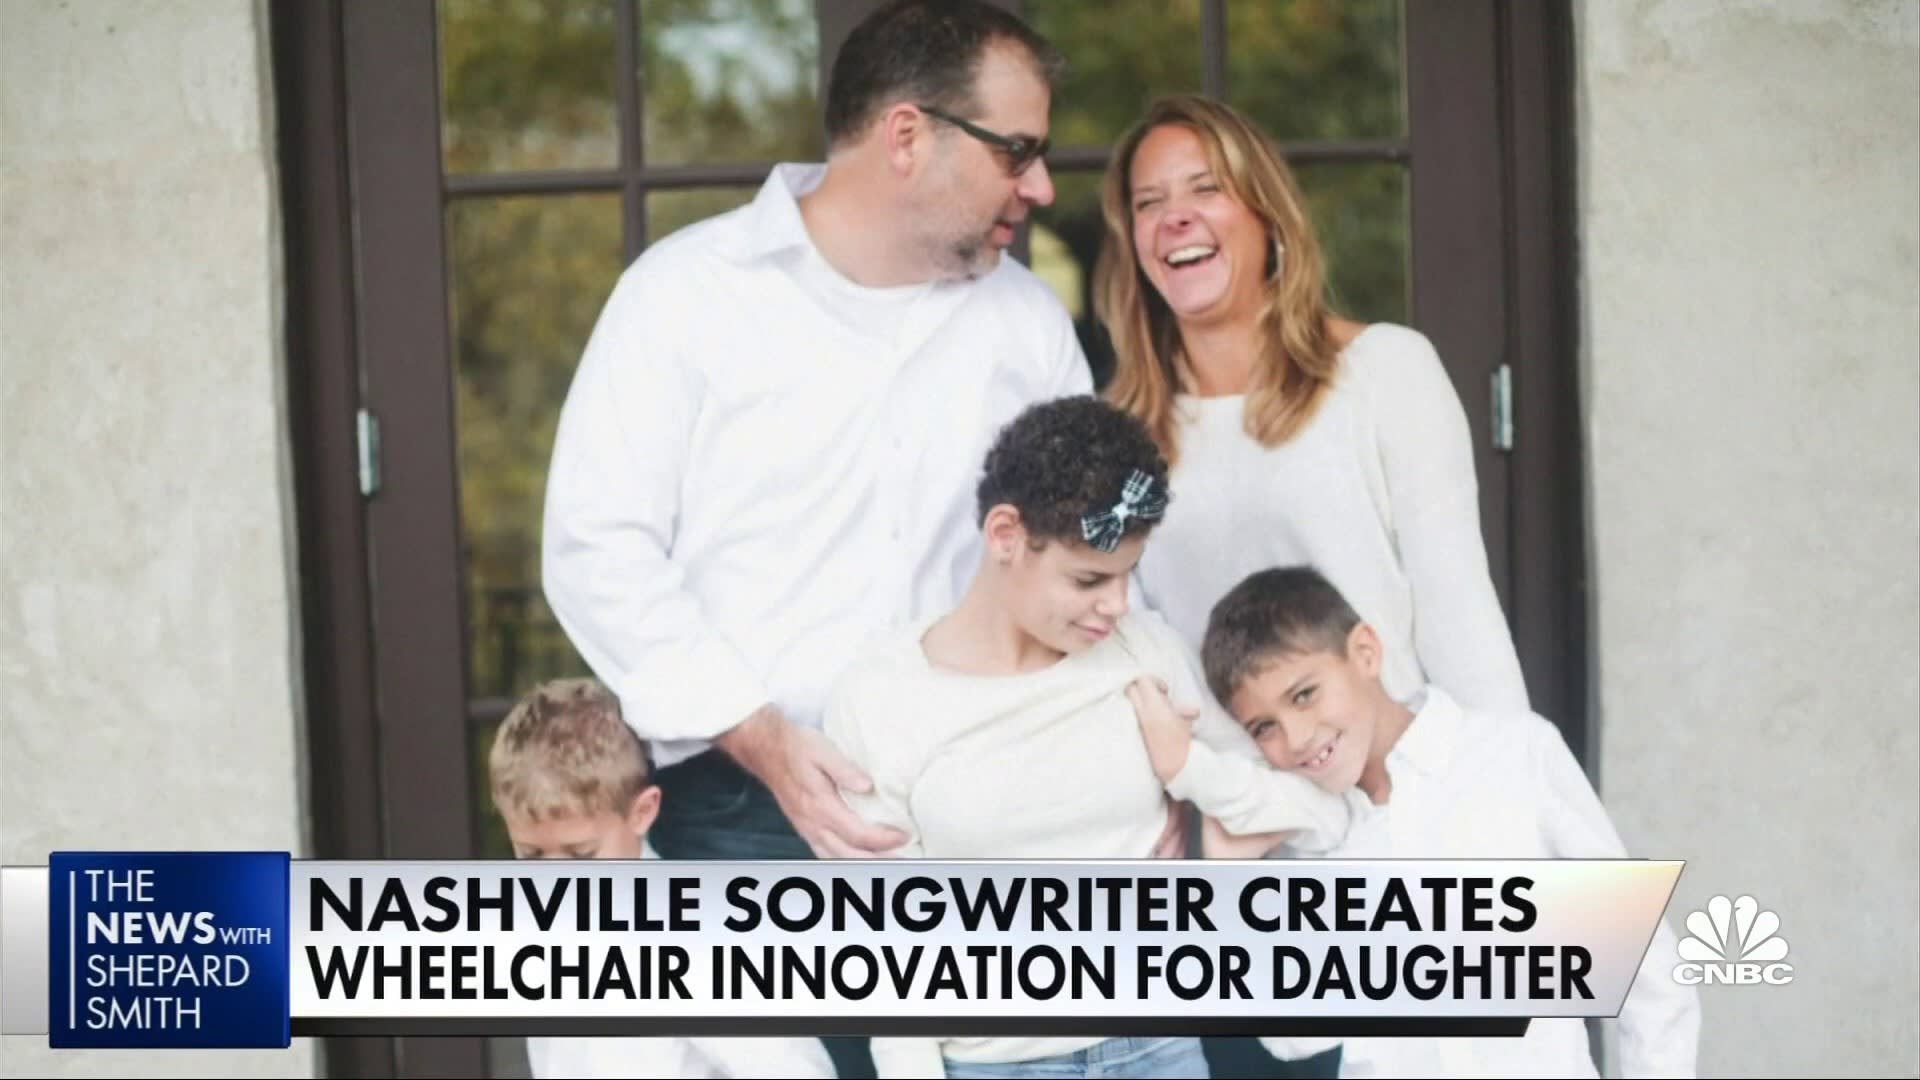 Nashville songwriter dad creates power wheelchair 'LUCI' for his daughter